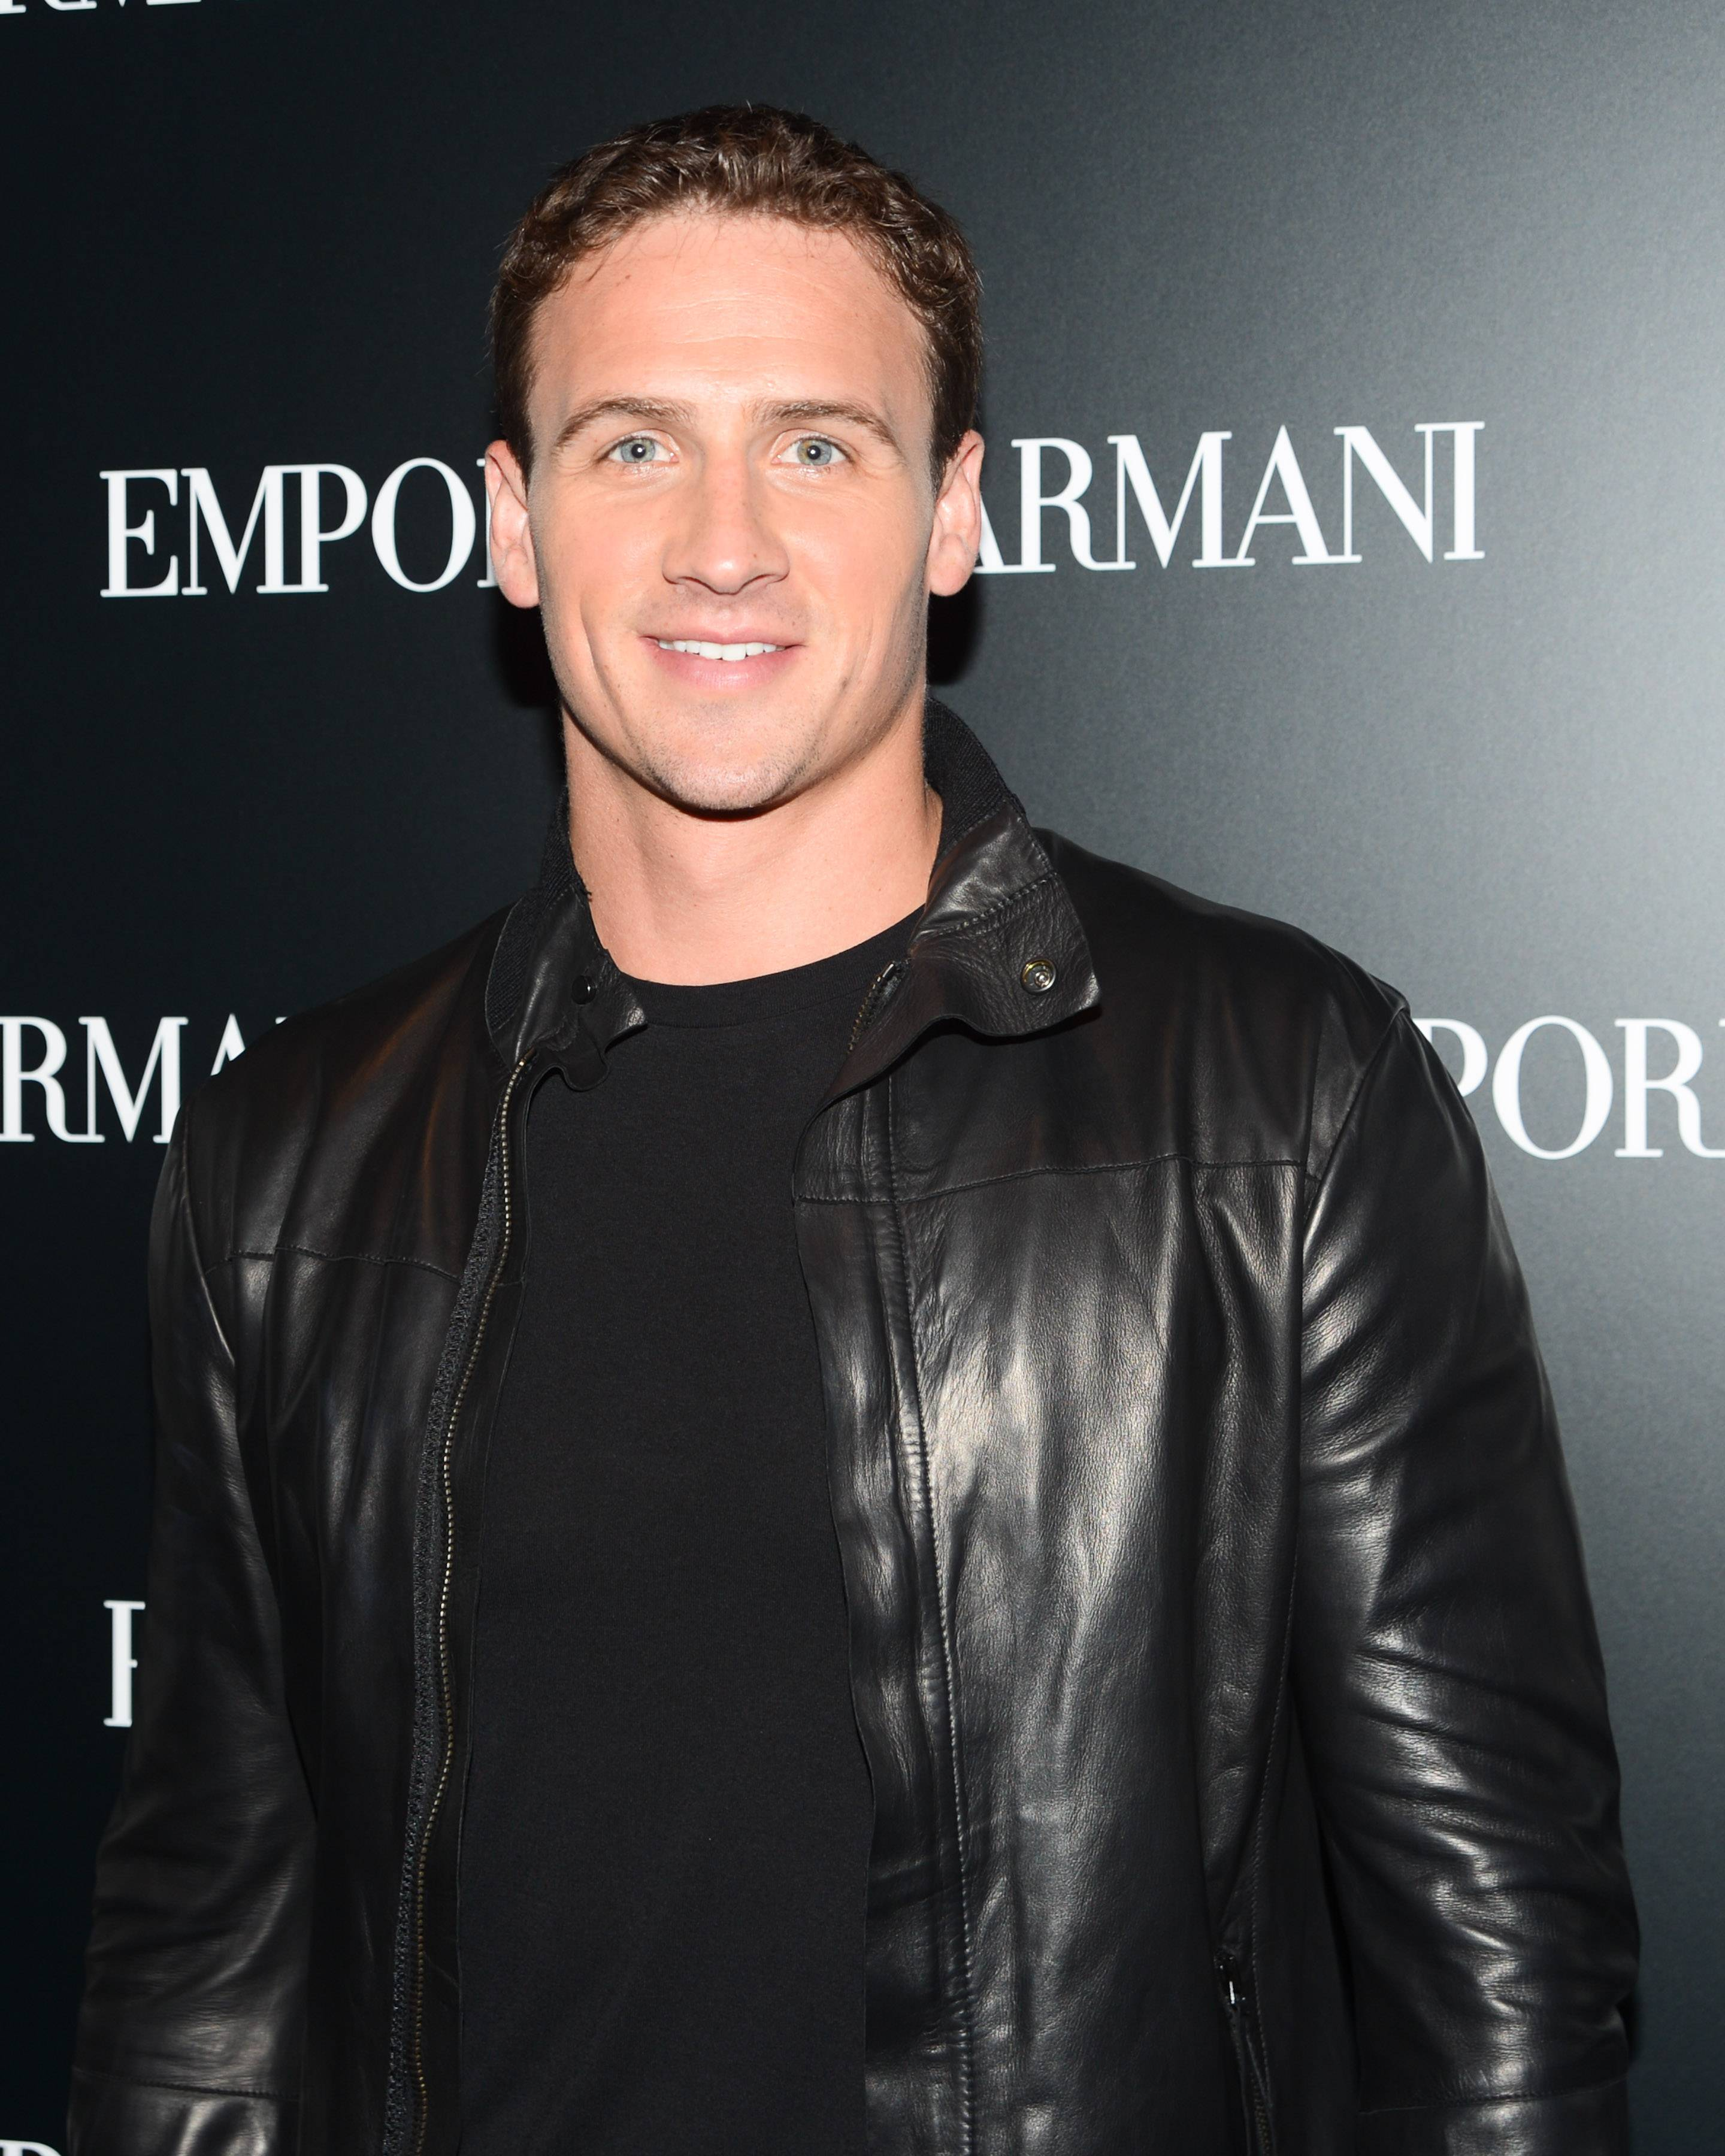 EMPORIO ARMANI NEW YORK FLAGSHIP OPENING